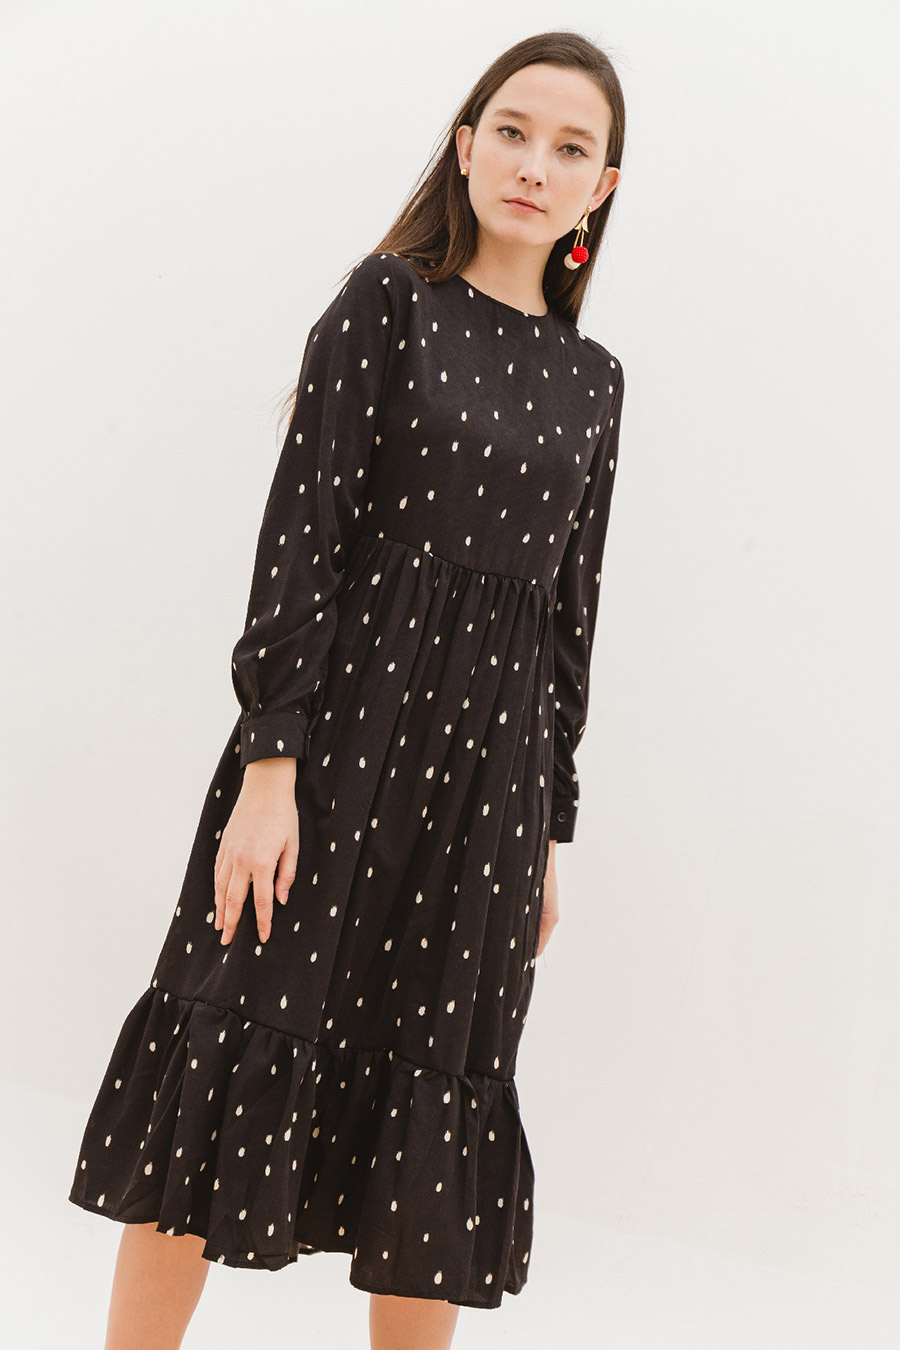 KAVANA DRESS - NOIR DOTTY